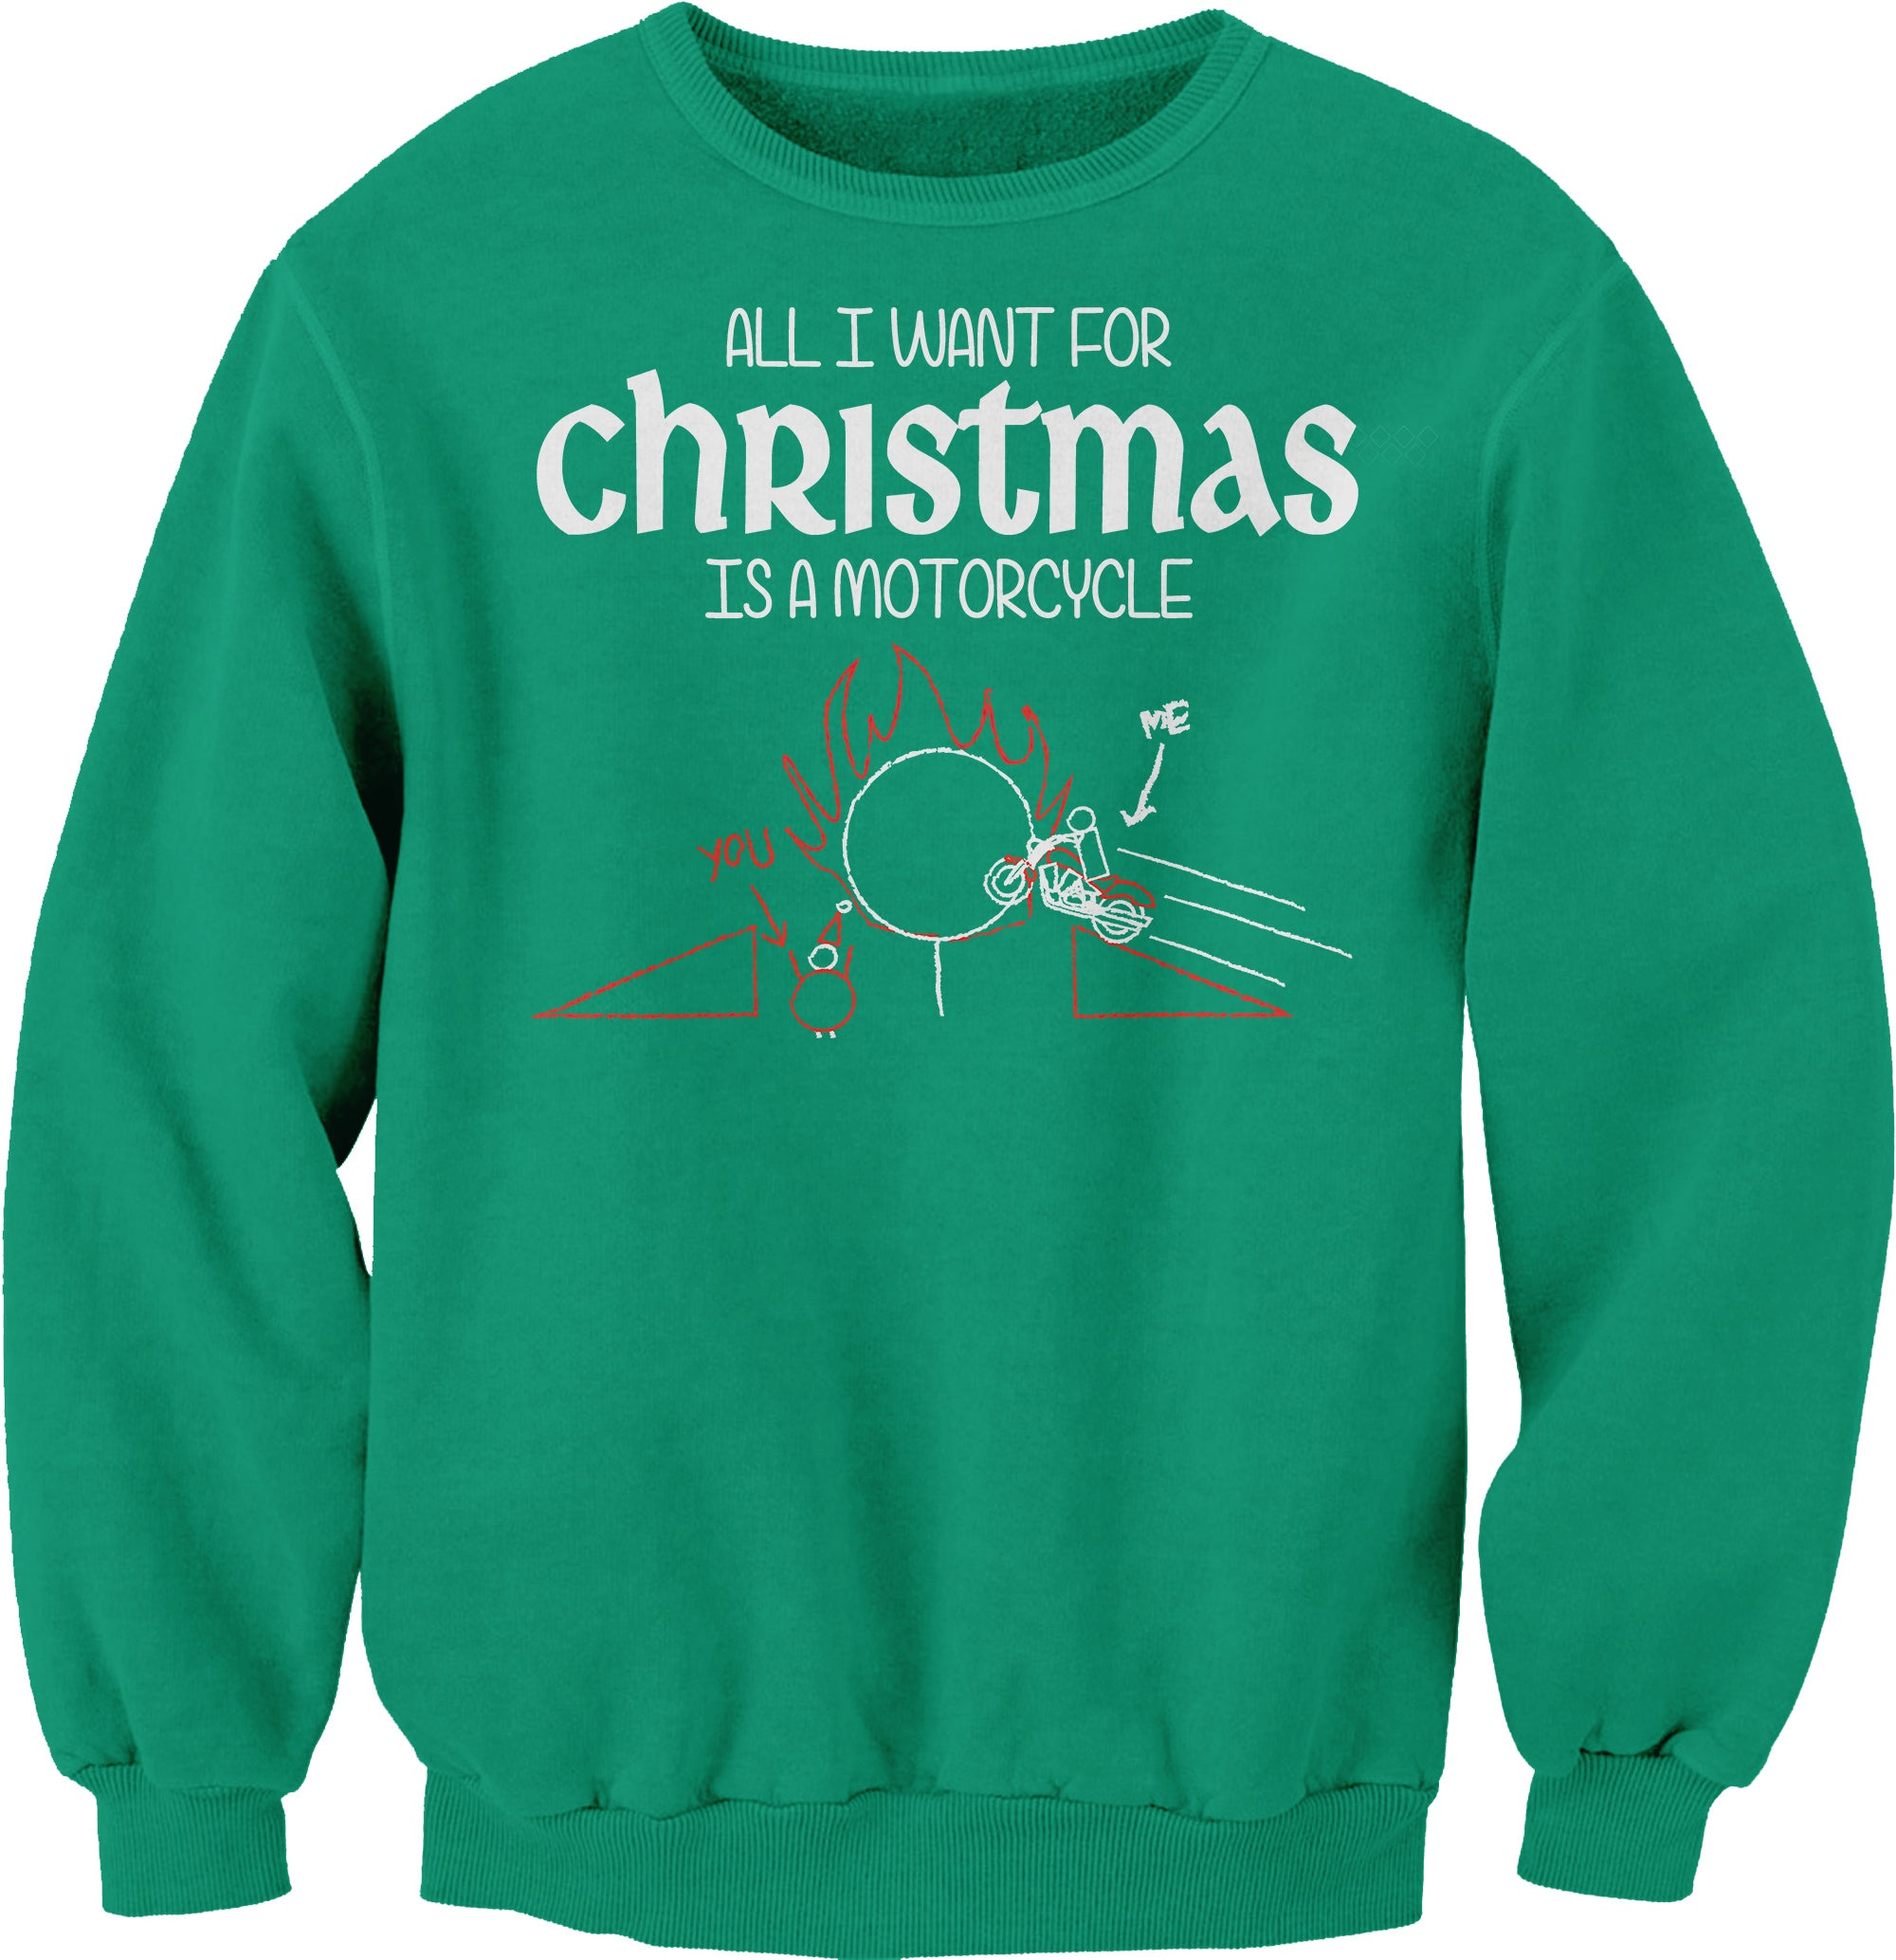 All I Want For Christmas Is A MOTORCYCLE-Sweat Shirt